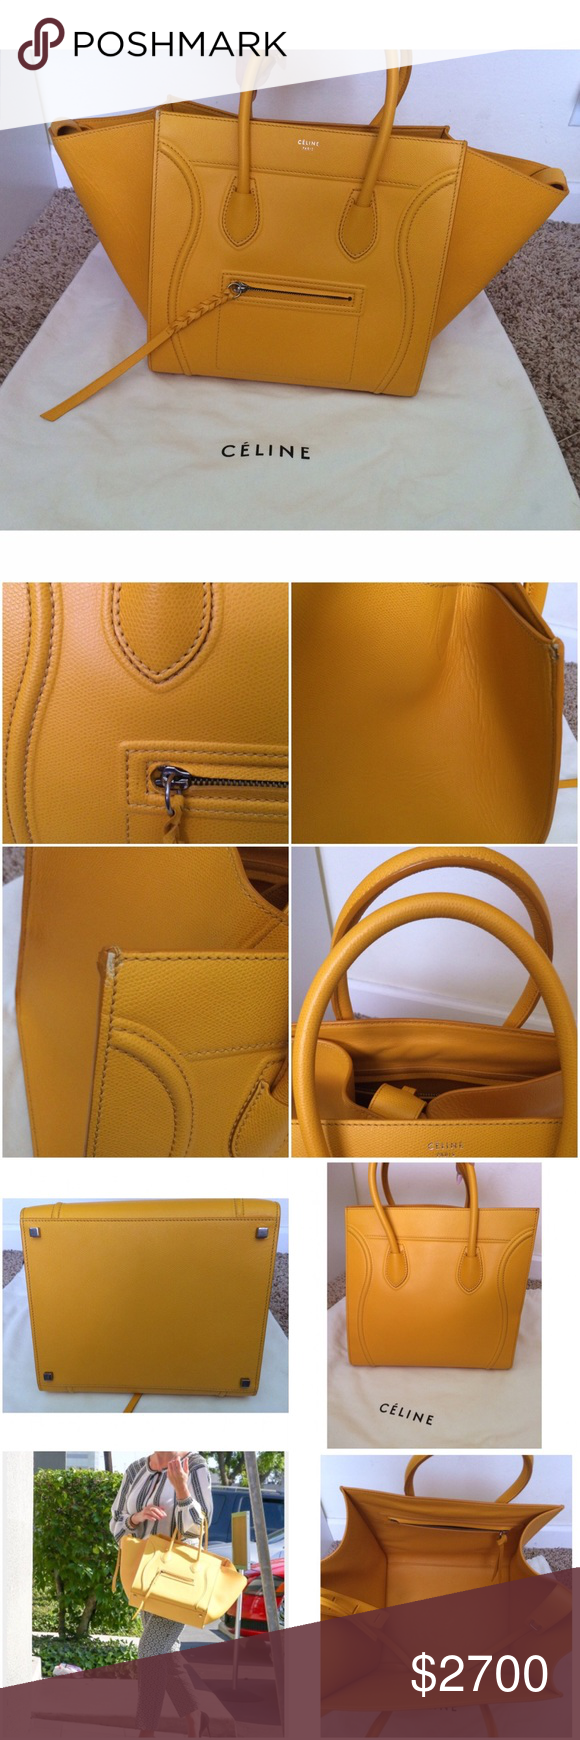 """EUC Celine Yellow Grain Leather Phantom Bag Still in really good condition Celine yellow grain leather bag. 100% authentic. It comes with the dust bag. No card or receipt. Only flaw is small tear on the right upper hand corner. Features one zipper pocket & zipper pocket in front. adjustable bucket belt in the middle. Can be worn fold in or the flaps fold out. Exterior and interior are clean. No stains. #: S-PA-0193.  Measure 21"""" length stretch open across and almost 11"""" height. ❌No trades or…"""